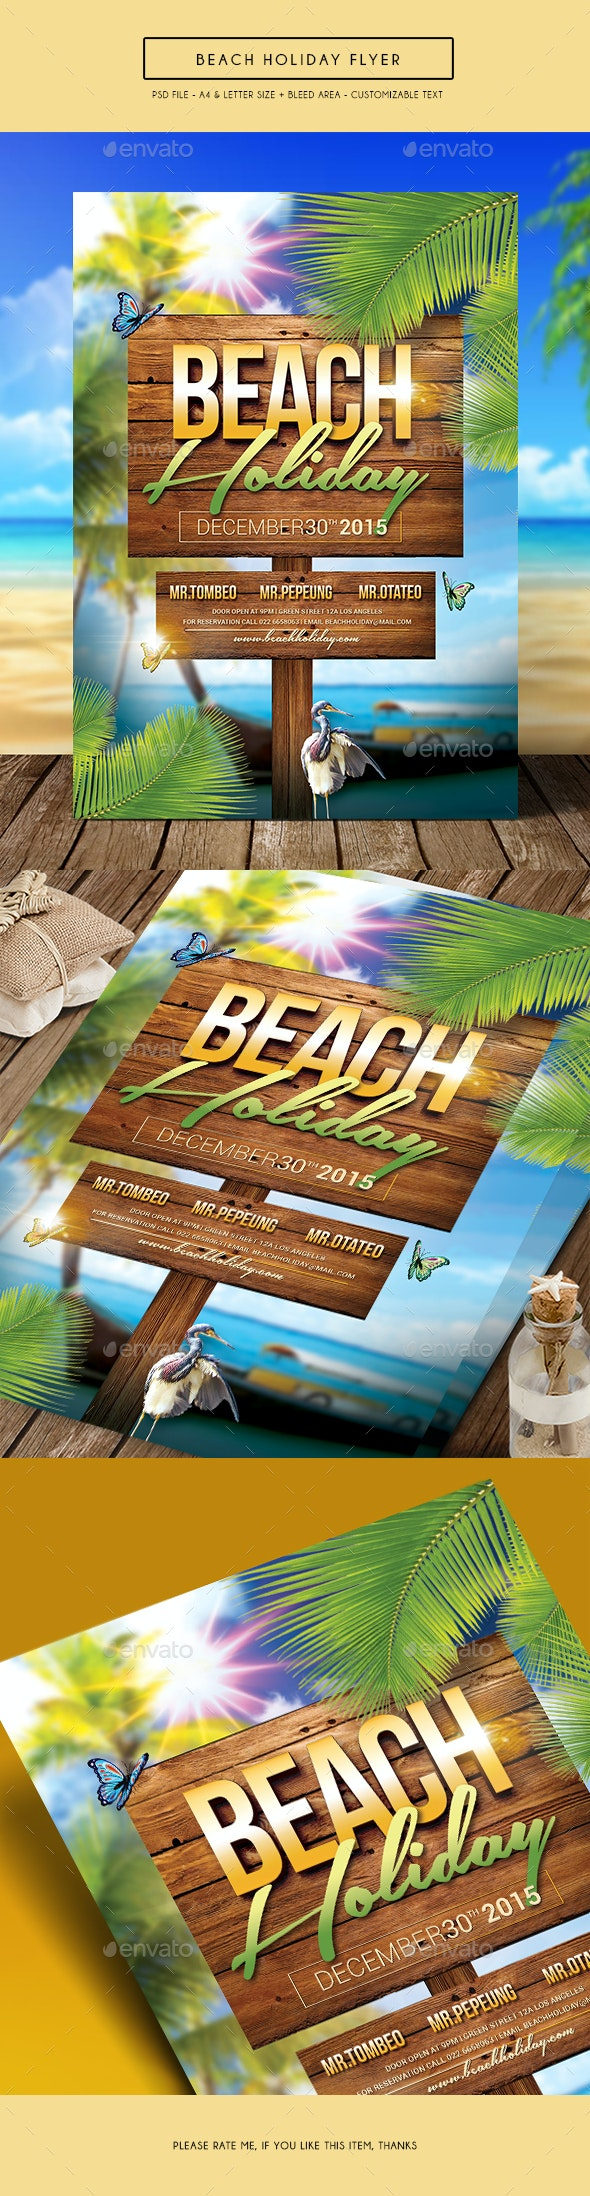 Beach Holiday Flyer - Clubs & Parties Events